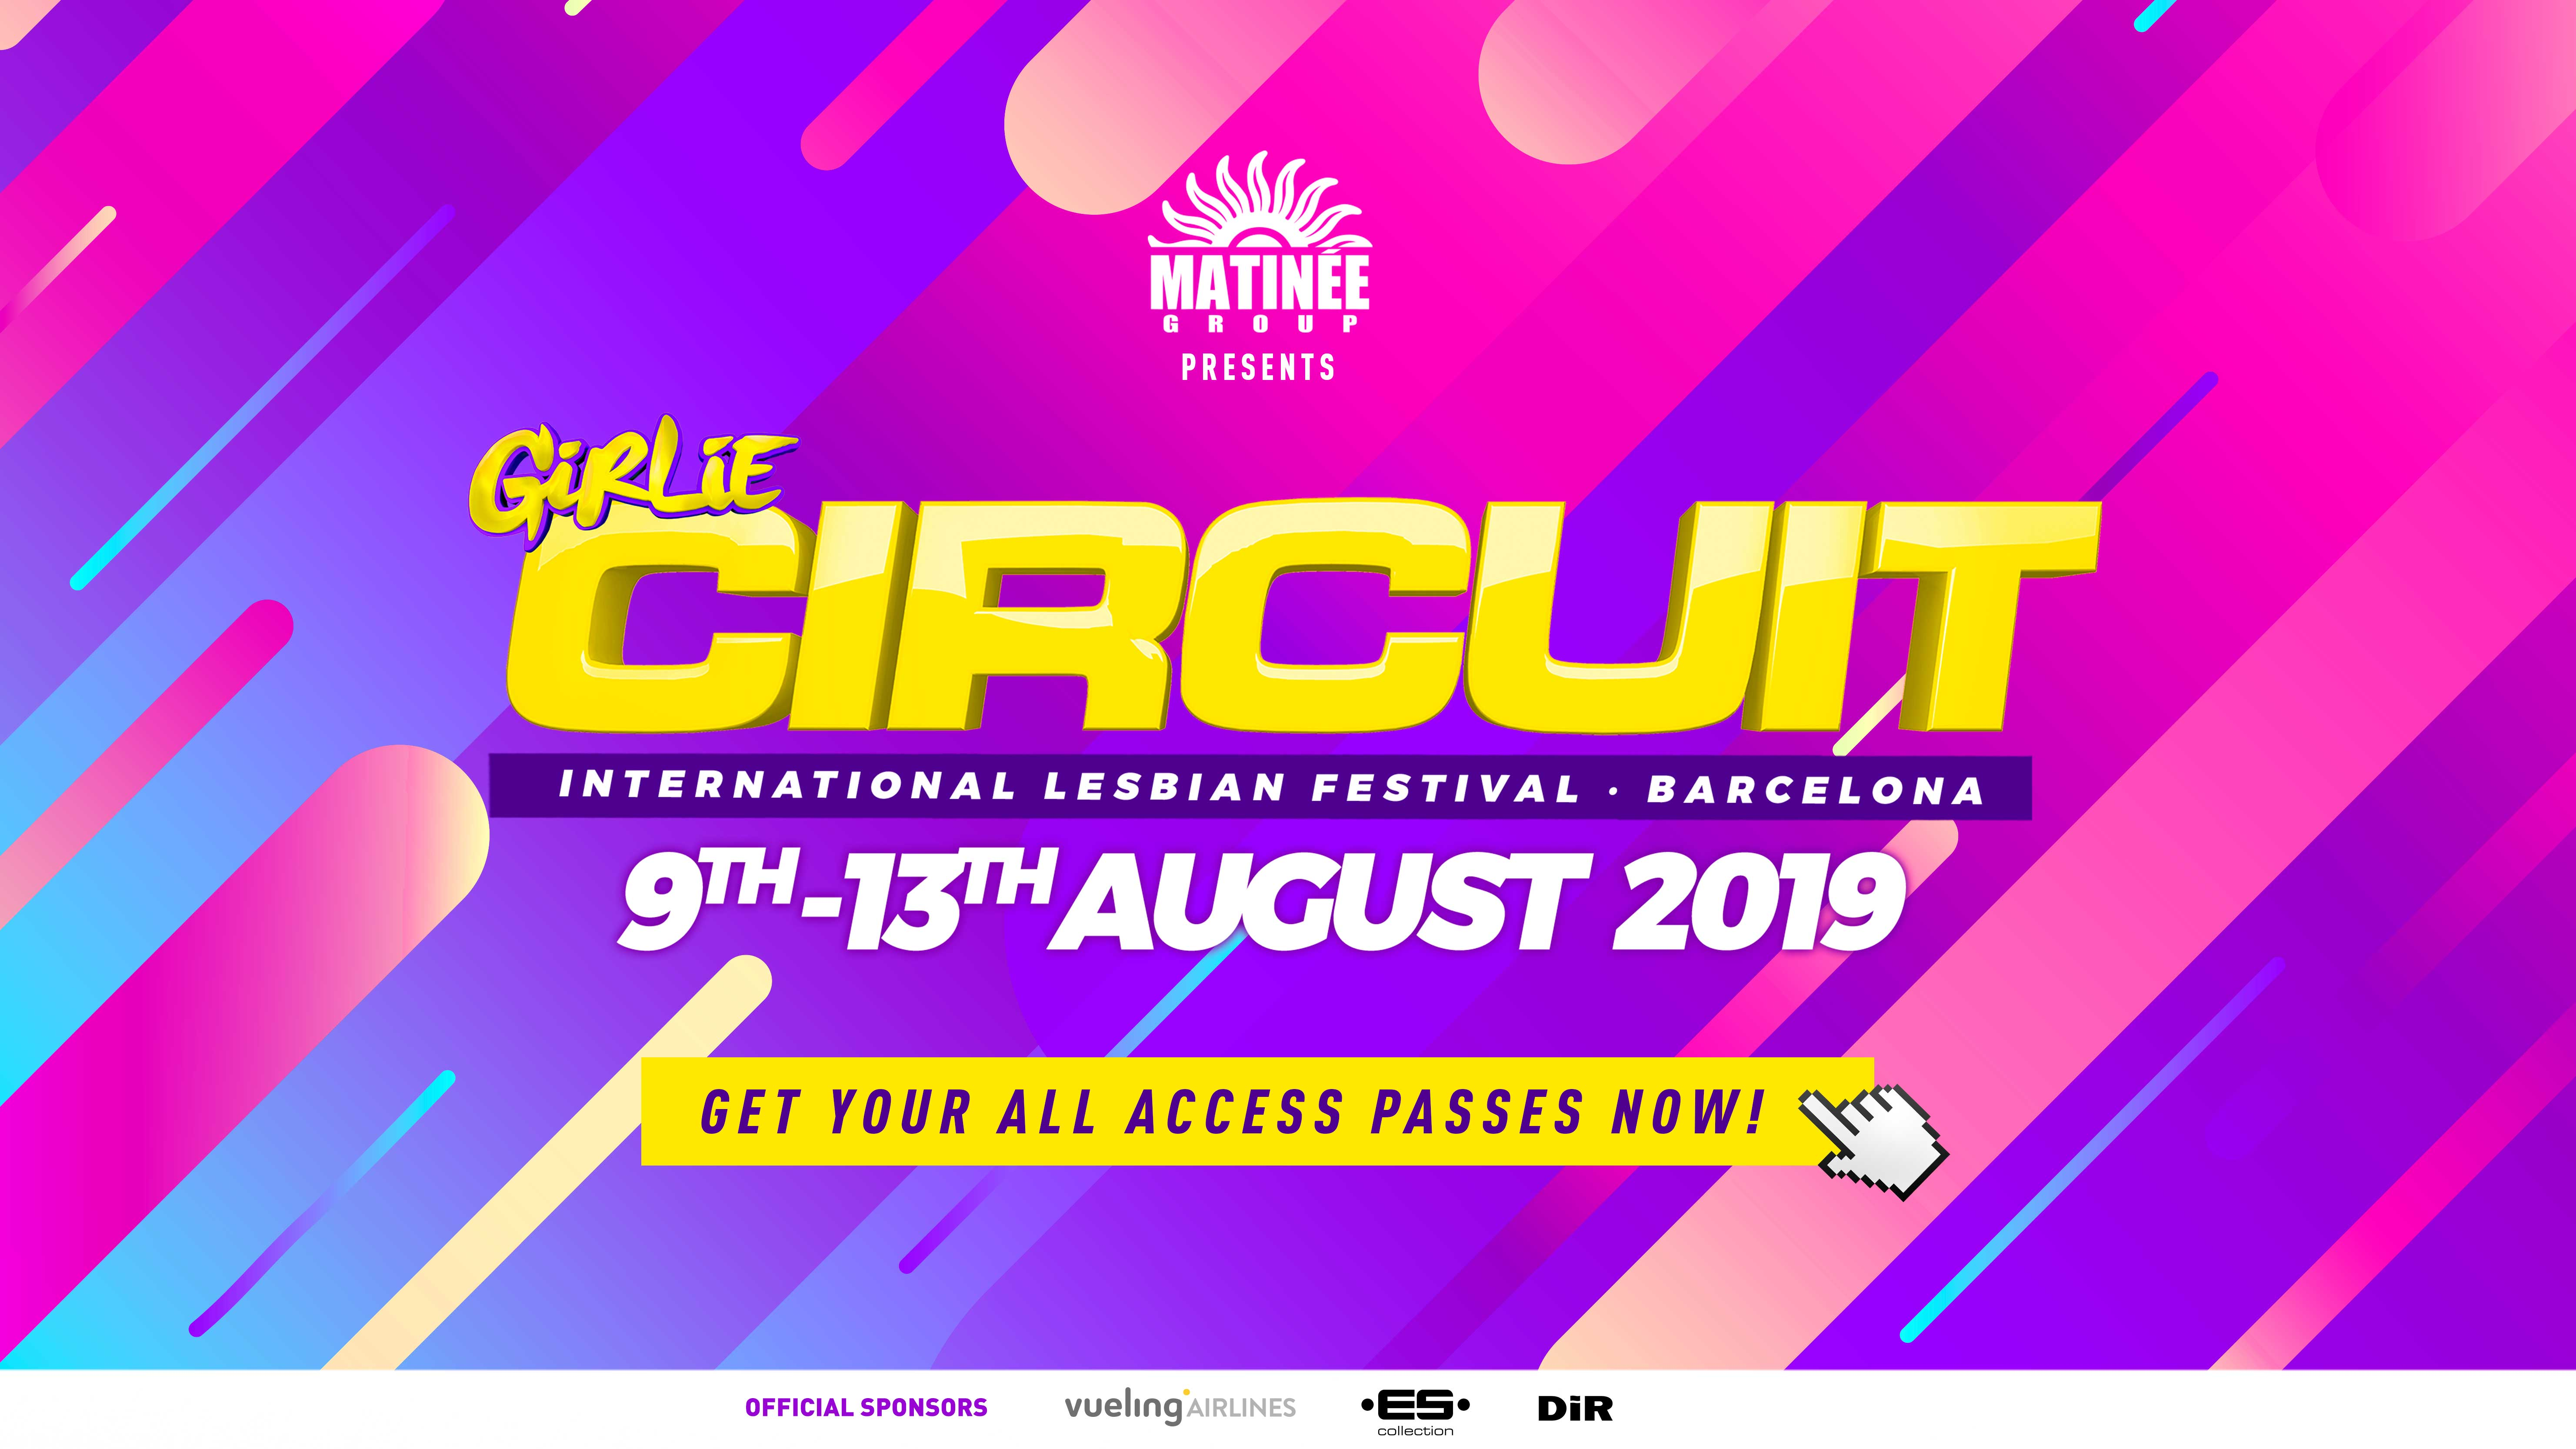 girlie-circuit-home-event-lesviab-party-barcelona-circuit-matinee-2